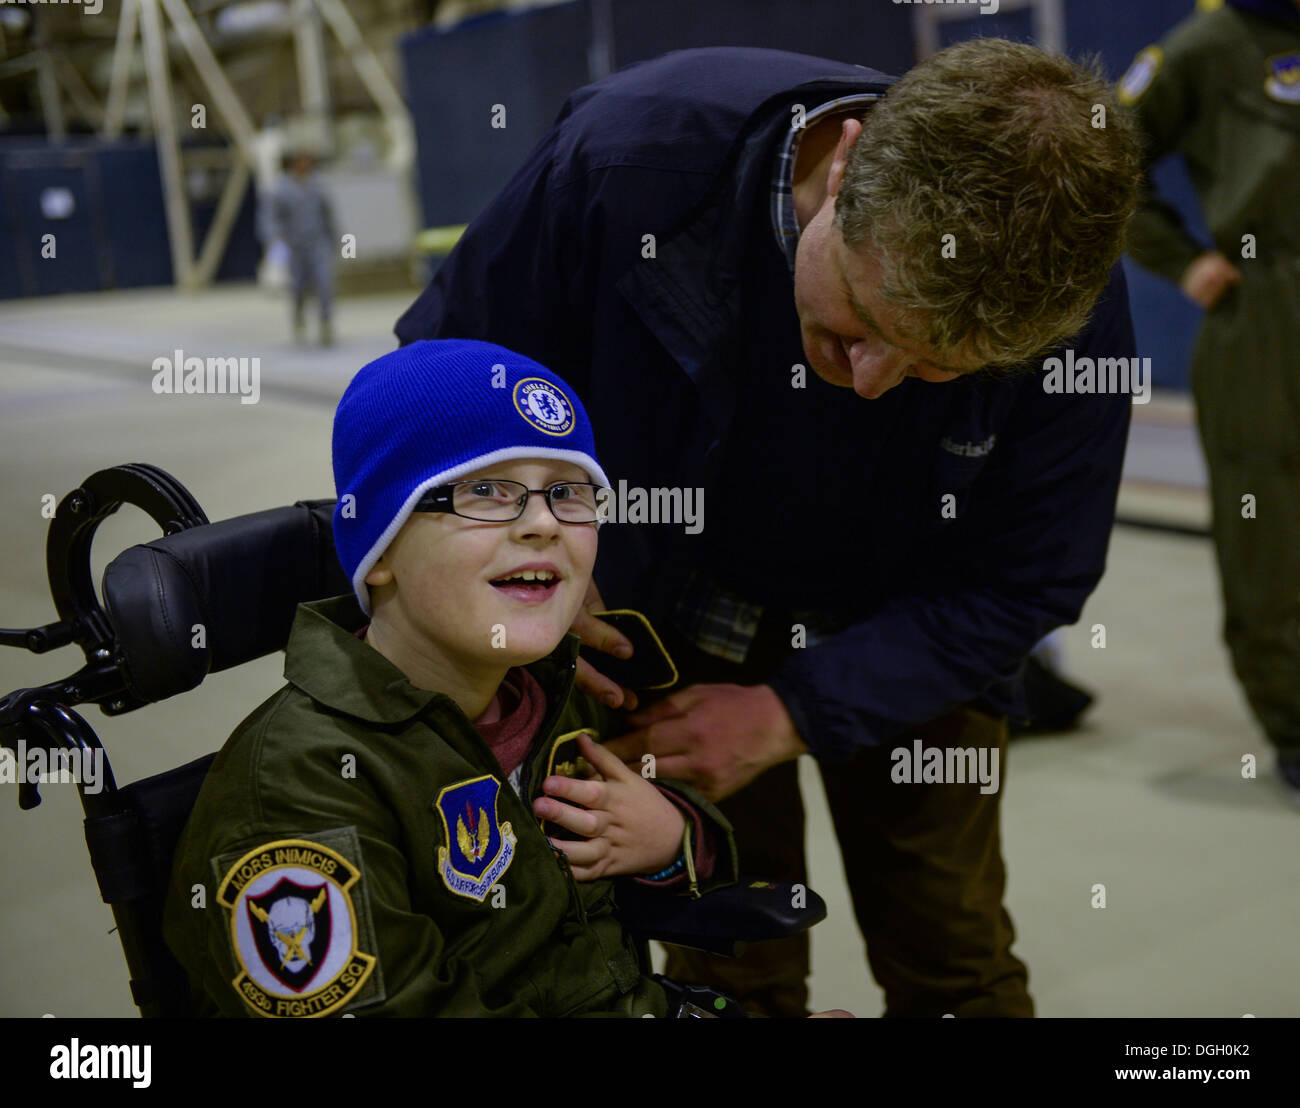 Pilot for a Day participant Ethan Ridd receives an honorary pilot's wings nameplate at Hangar 7 on Royal Air Force Lakenheath, England, Oct. 10, 2013. Pilot for a Day, started in 2012, gives local children with serious illnesses a day away from routine ho - Stock Image